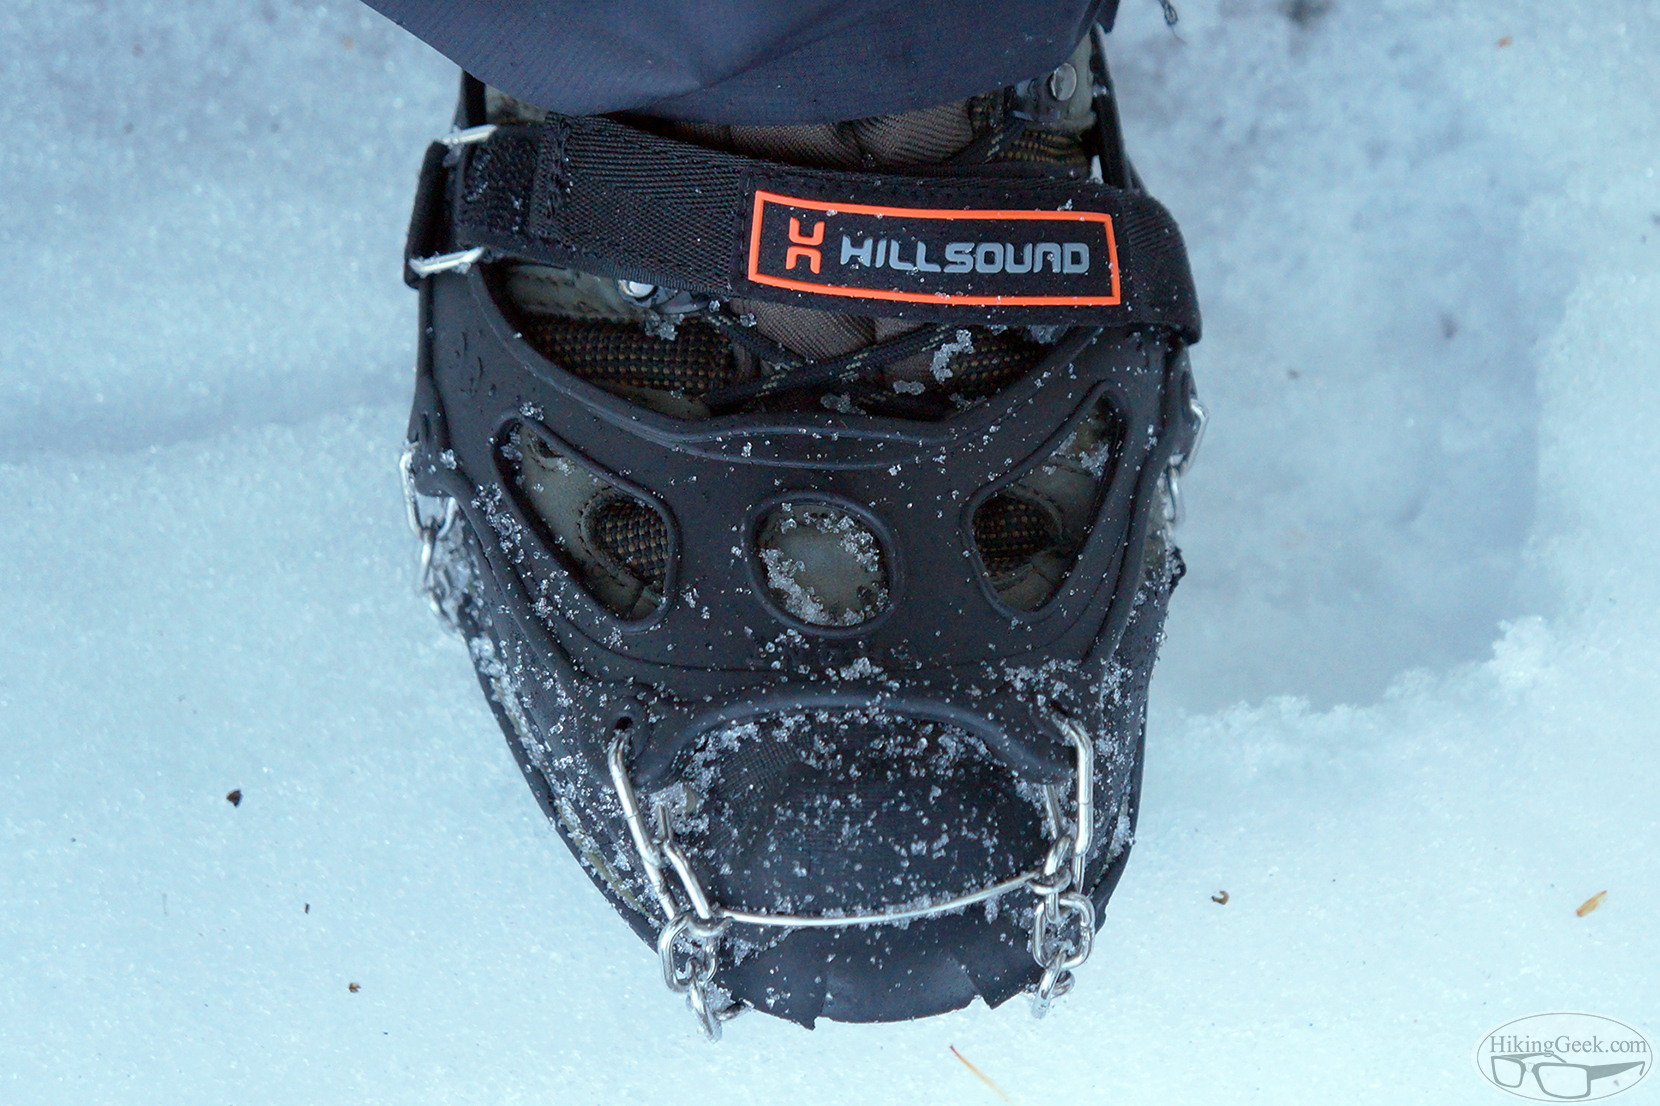 Gear Review: Hillsound Trail Crampons